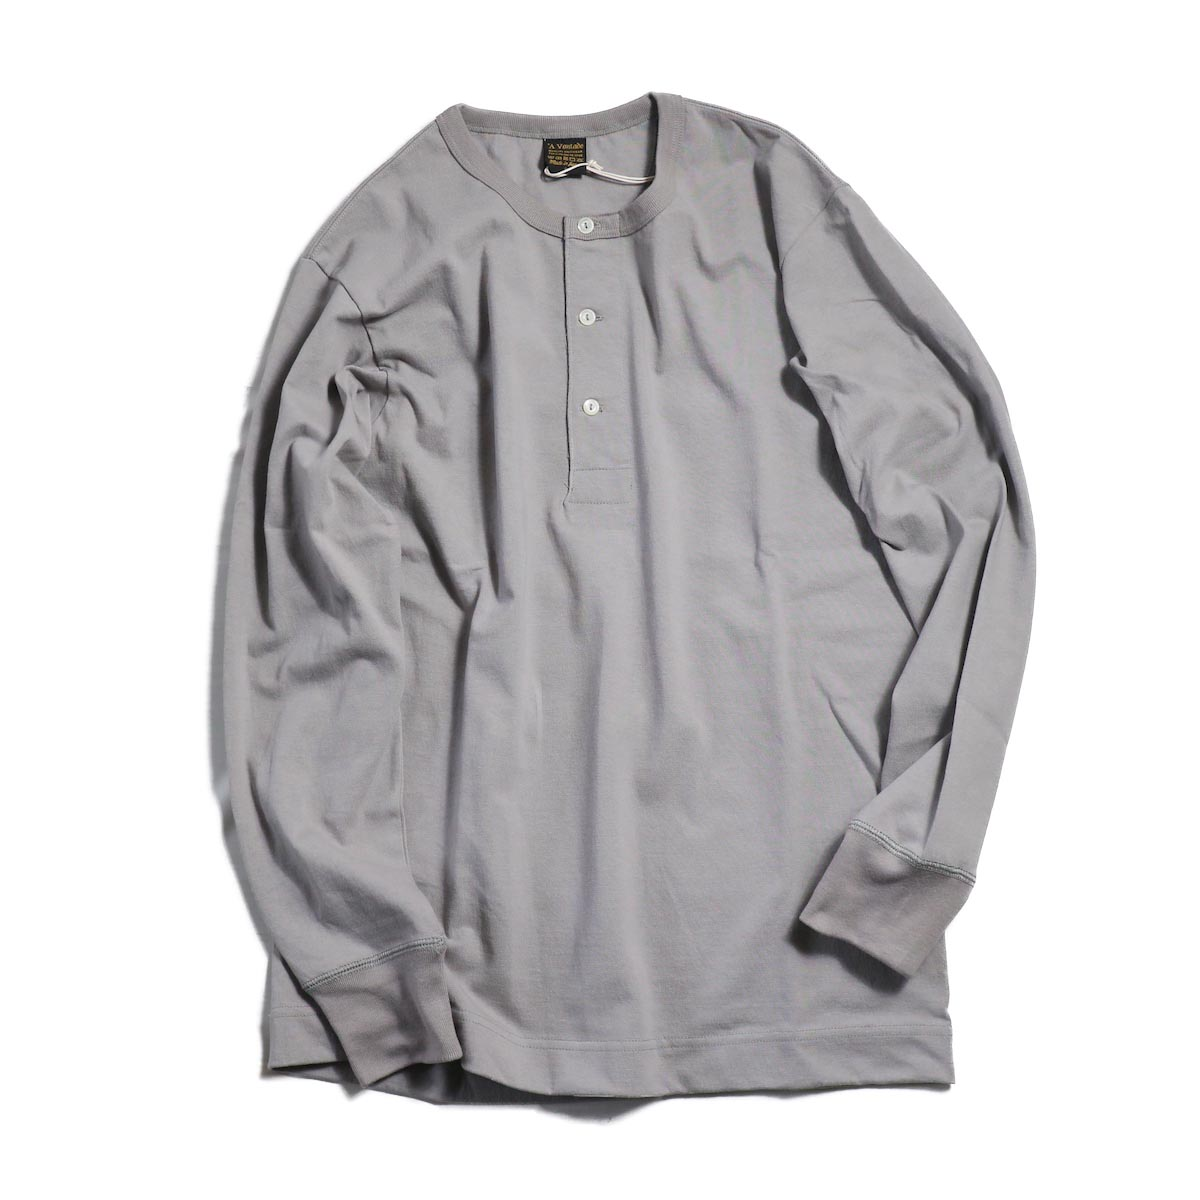 A VONTADE / Henly Neck L/S Tube T-Shirt -SILVER GREY